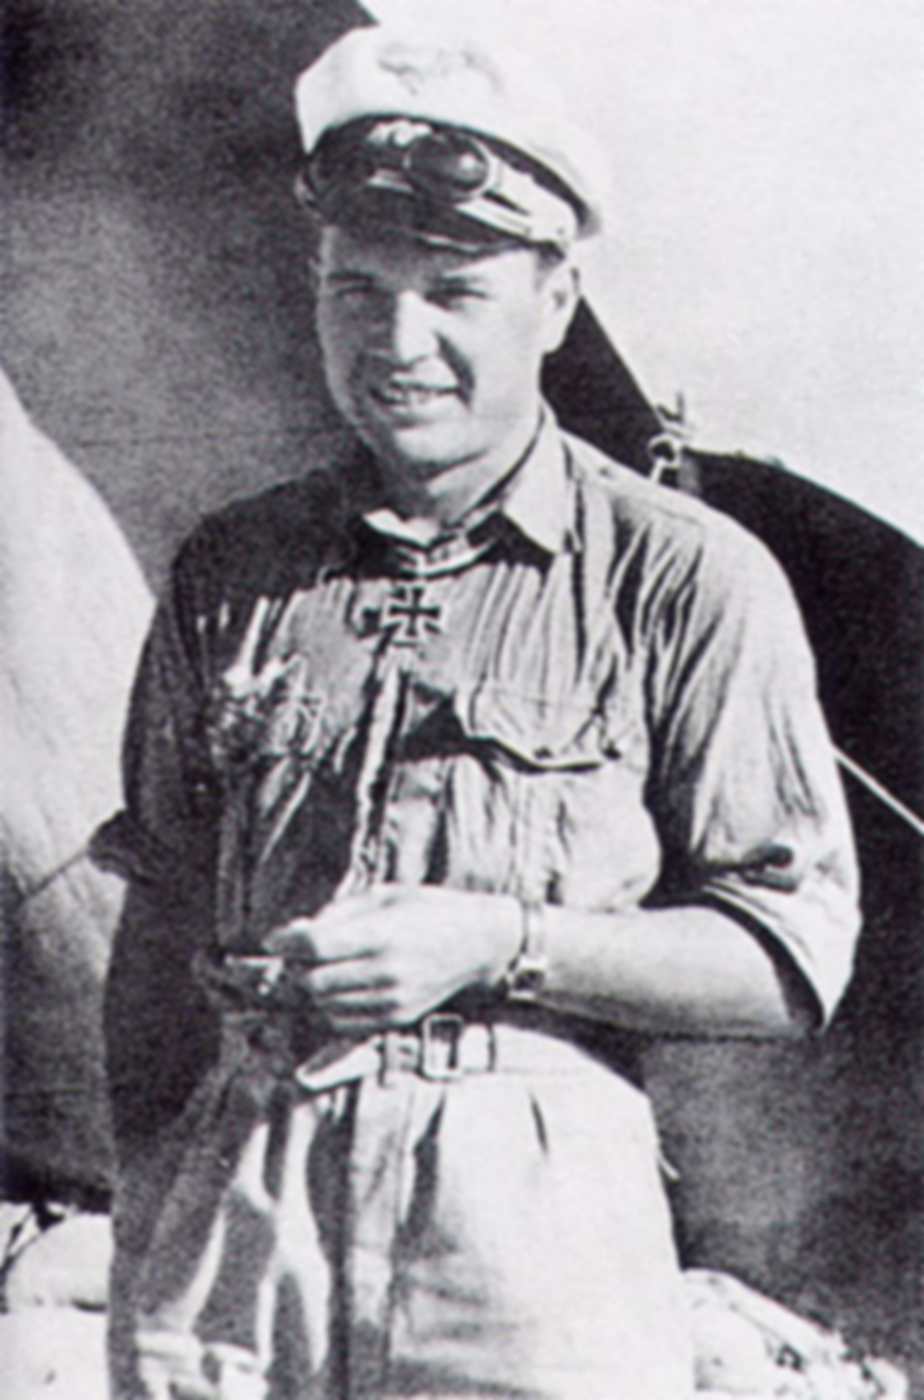 Aircrew Luftwaffe JG27 ace Gustav Rodel North Africa June 1942 01